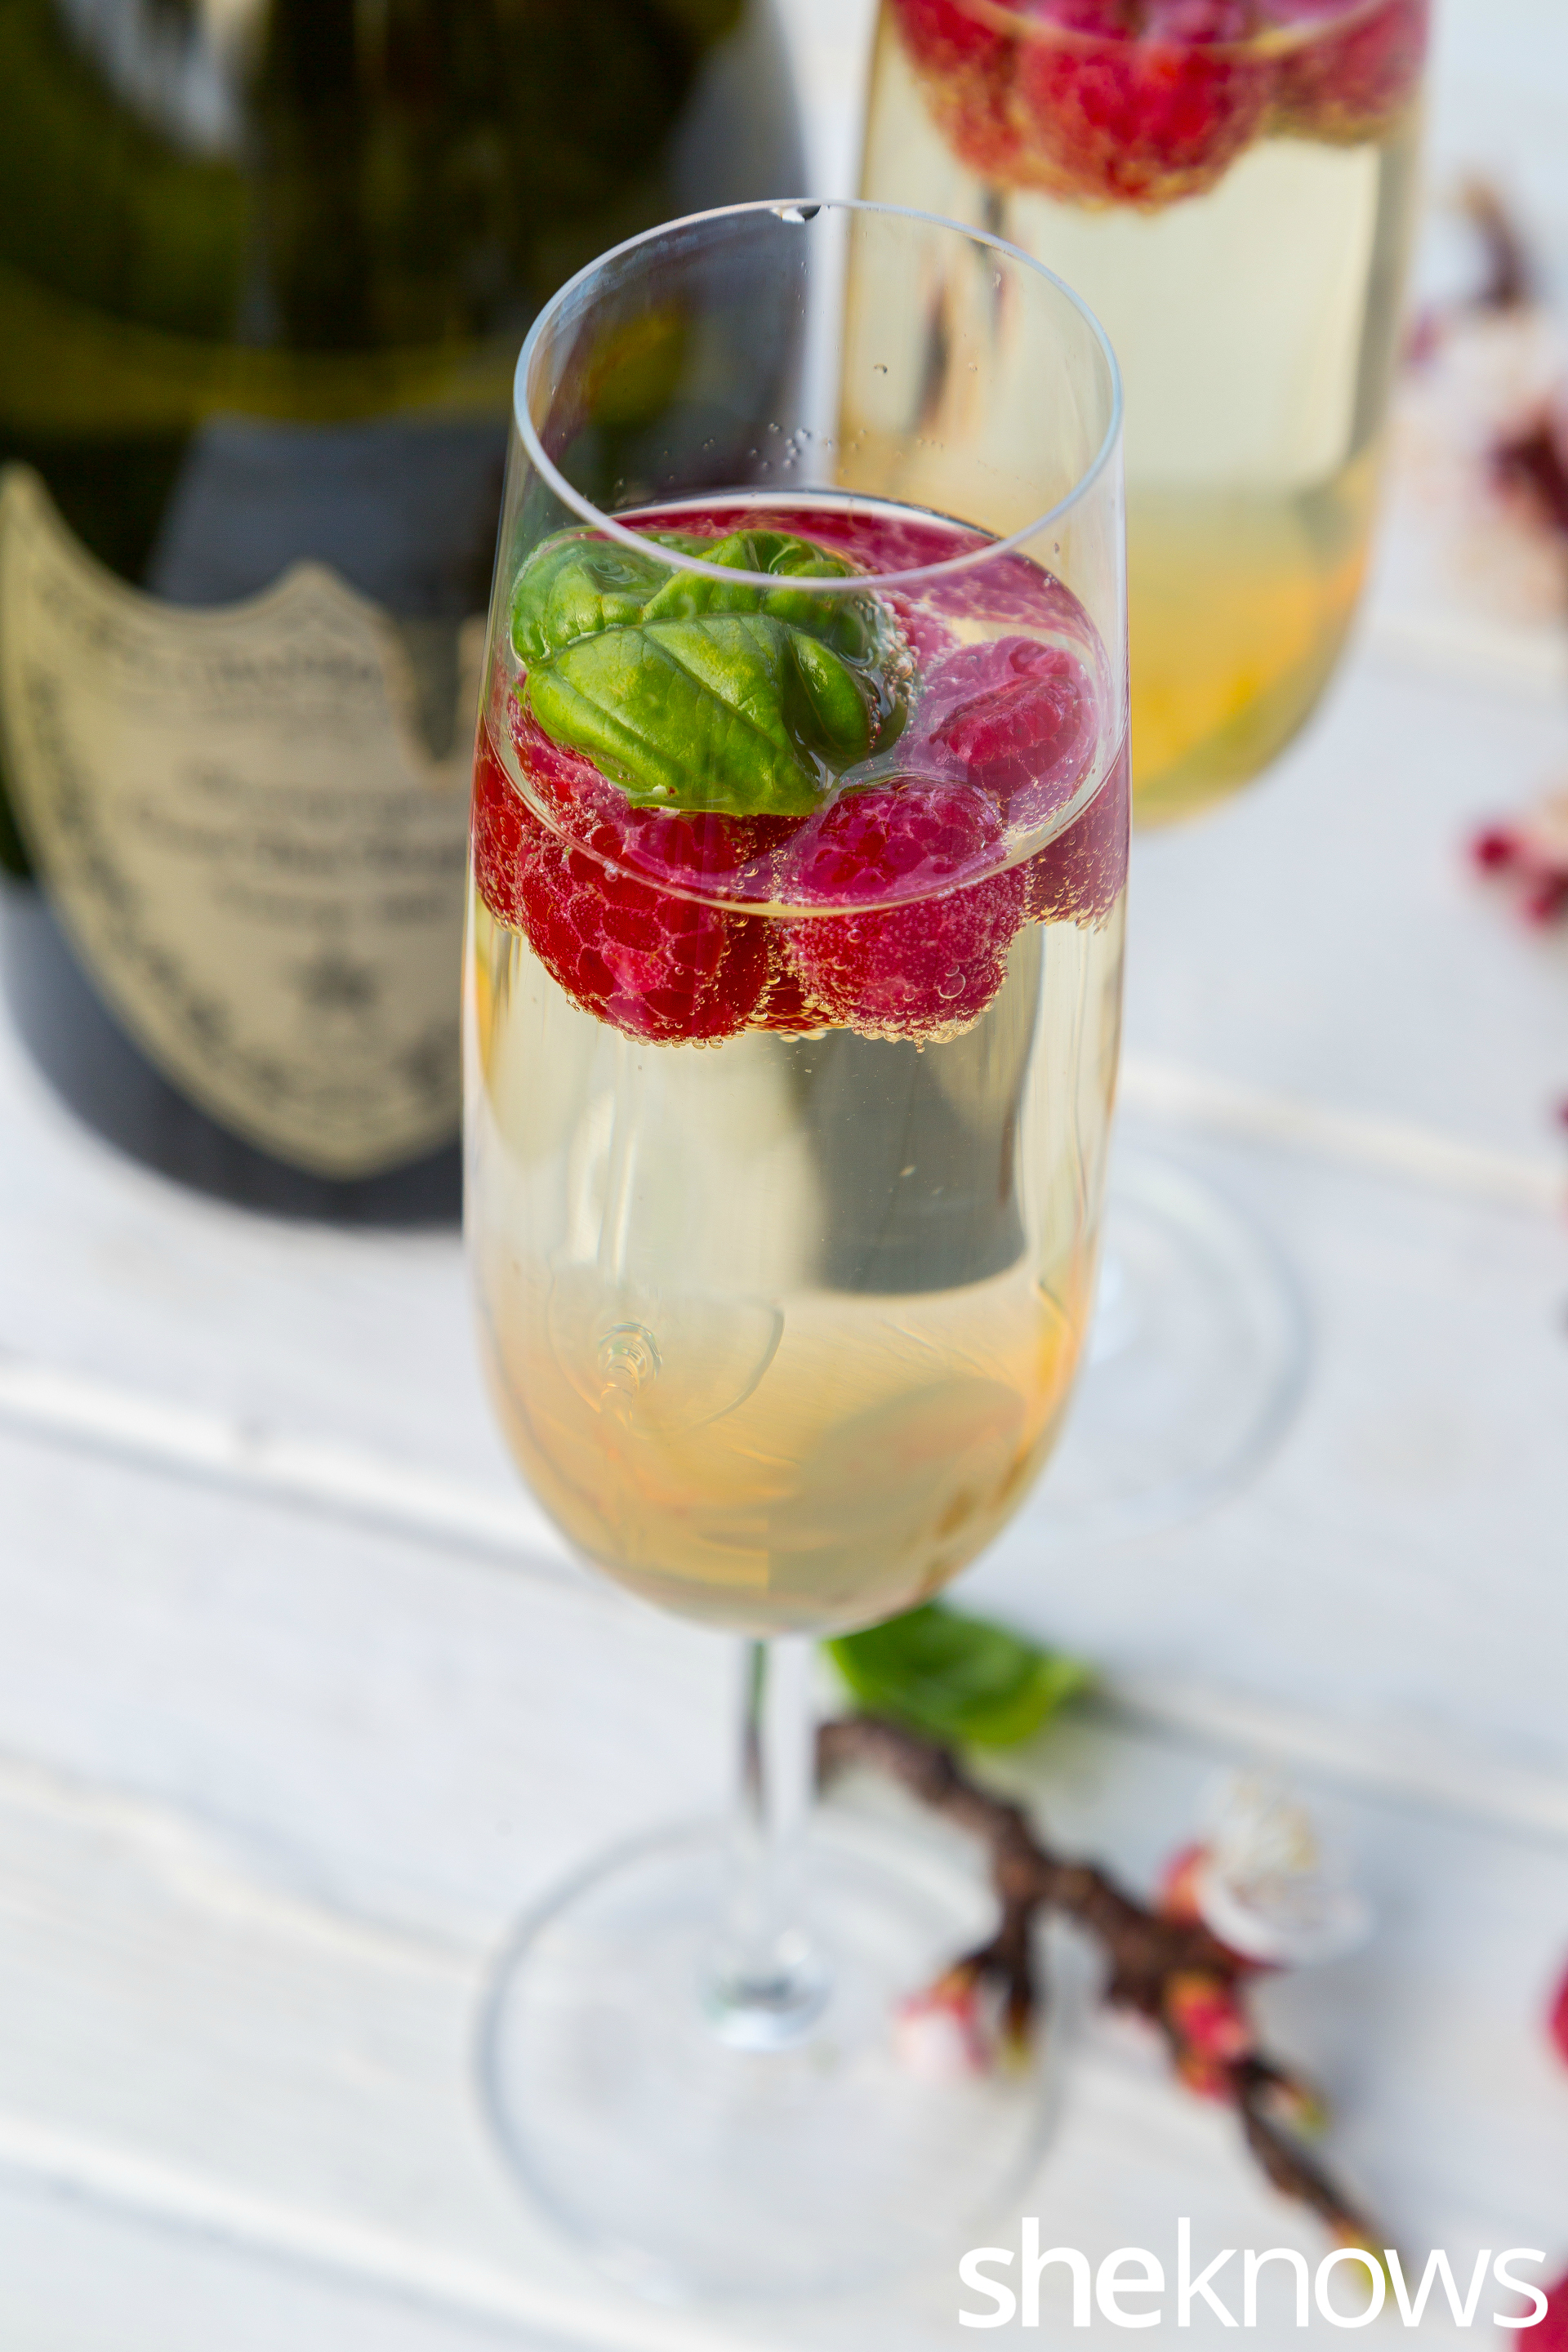 Ederflower mimosa with raspberries and basil